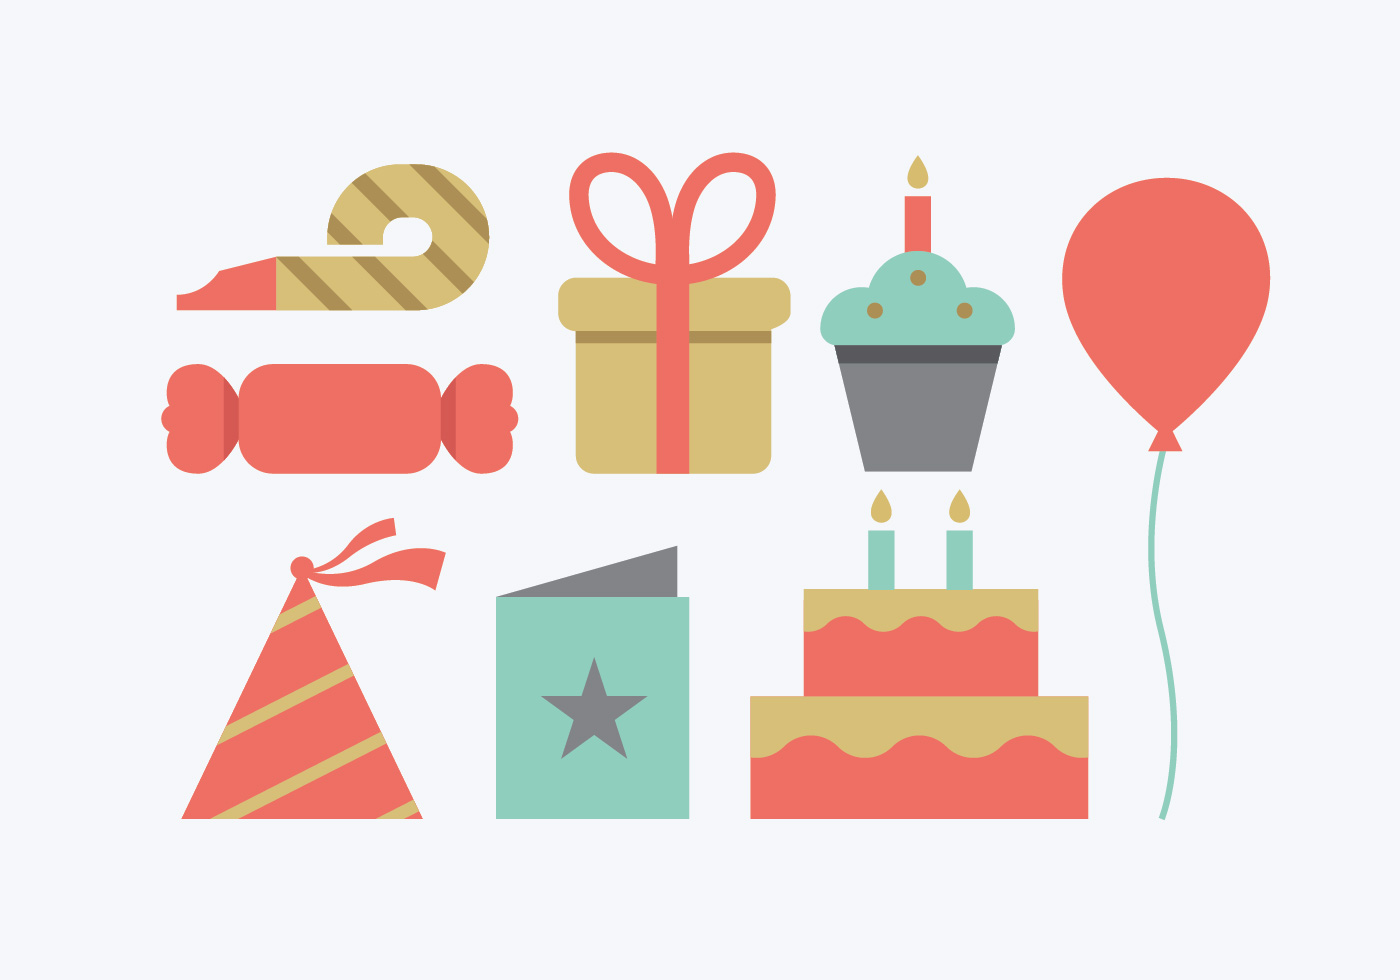 Birthday Party Icons - Download Free Vector Art, Stock ...